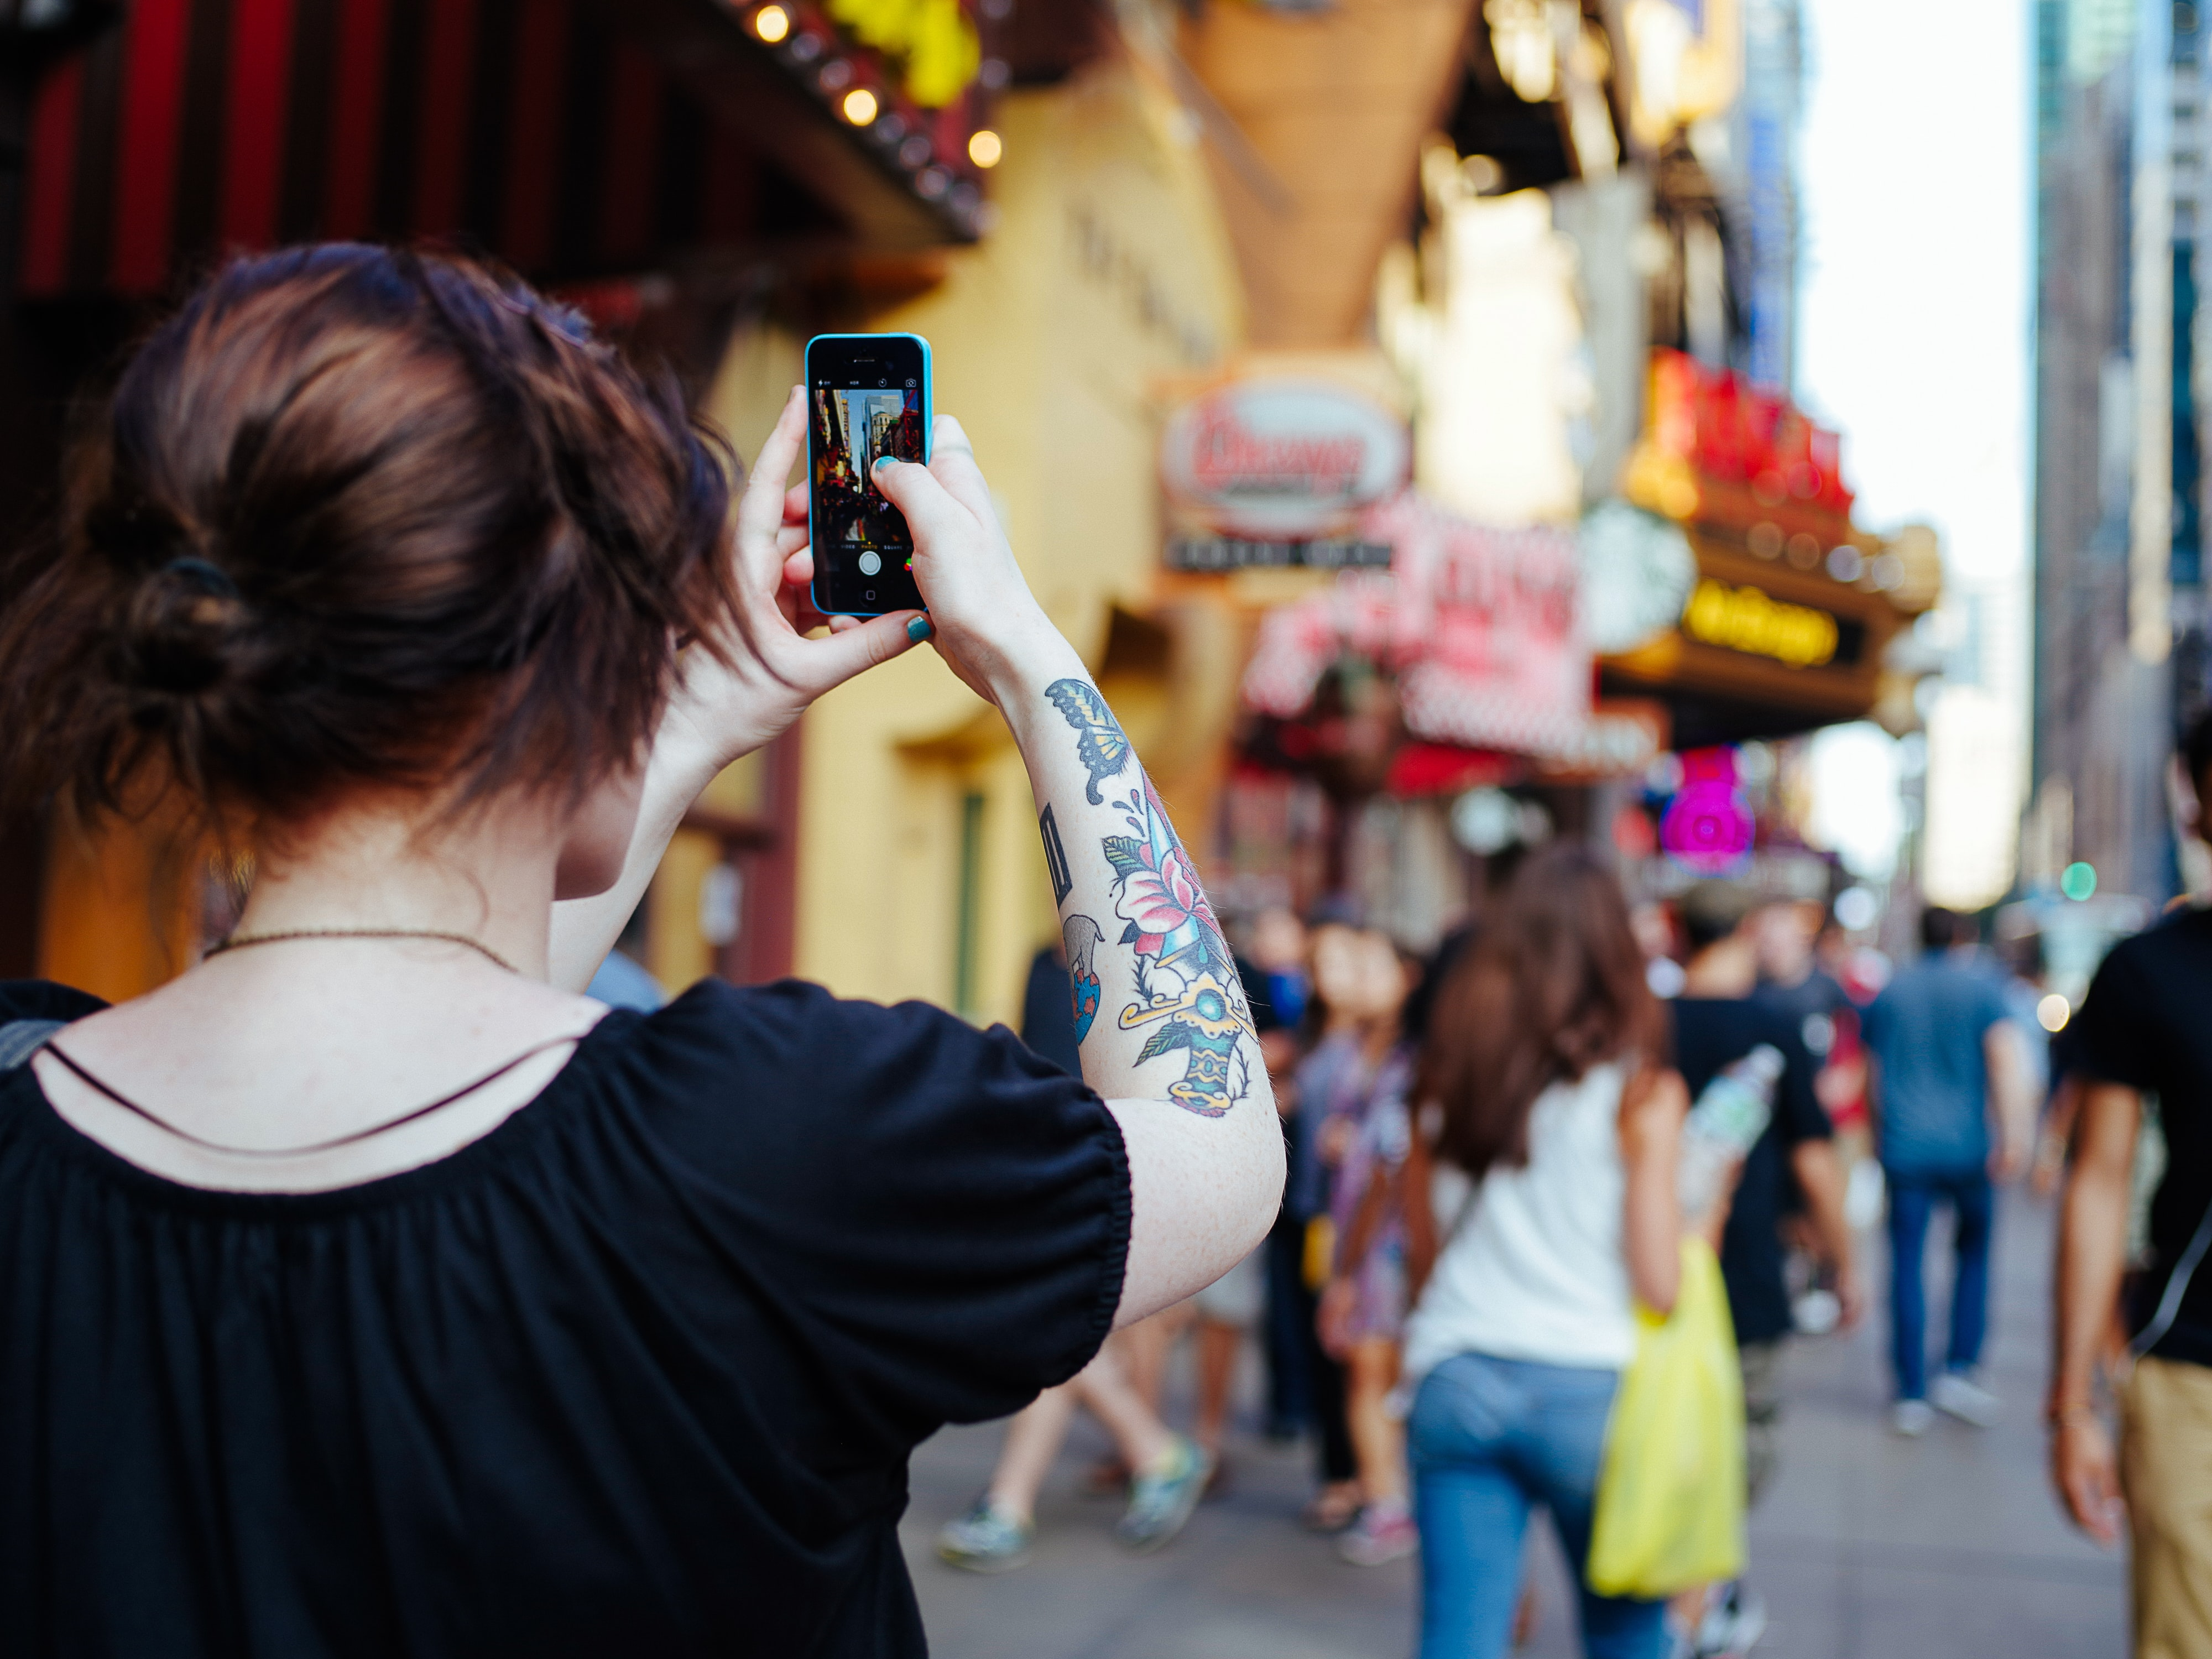 focus photo of woman in black cap-sleeved shirt holding smartphone while taking photo